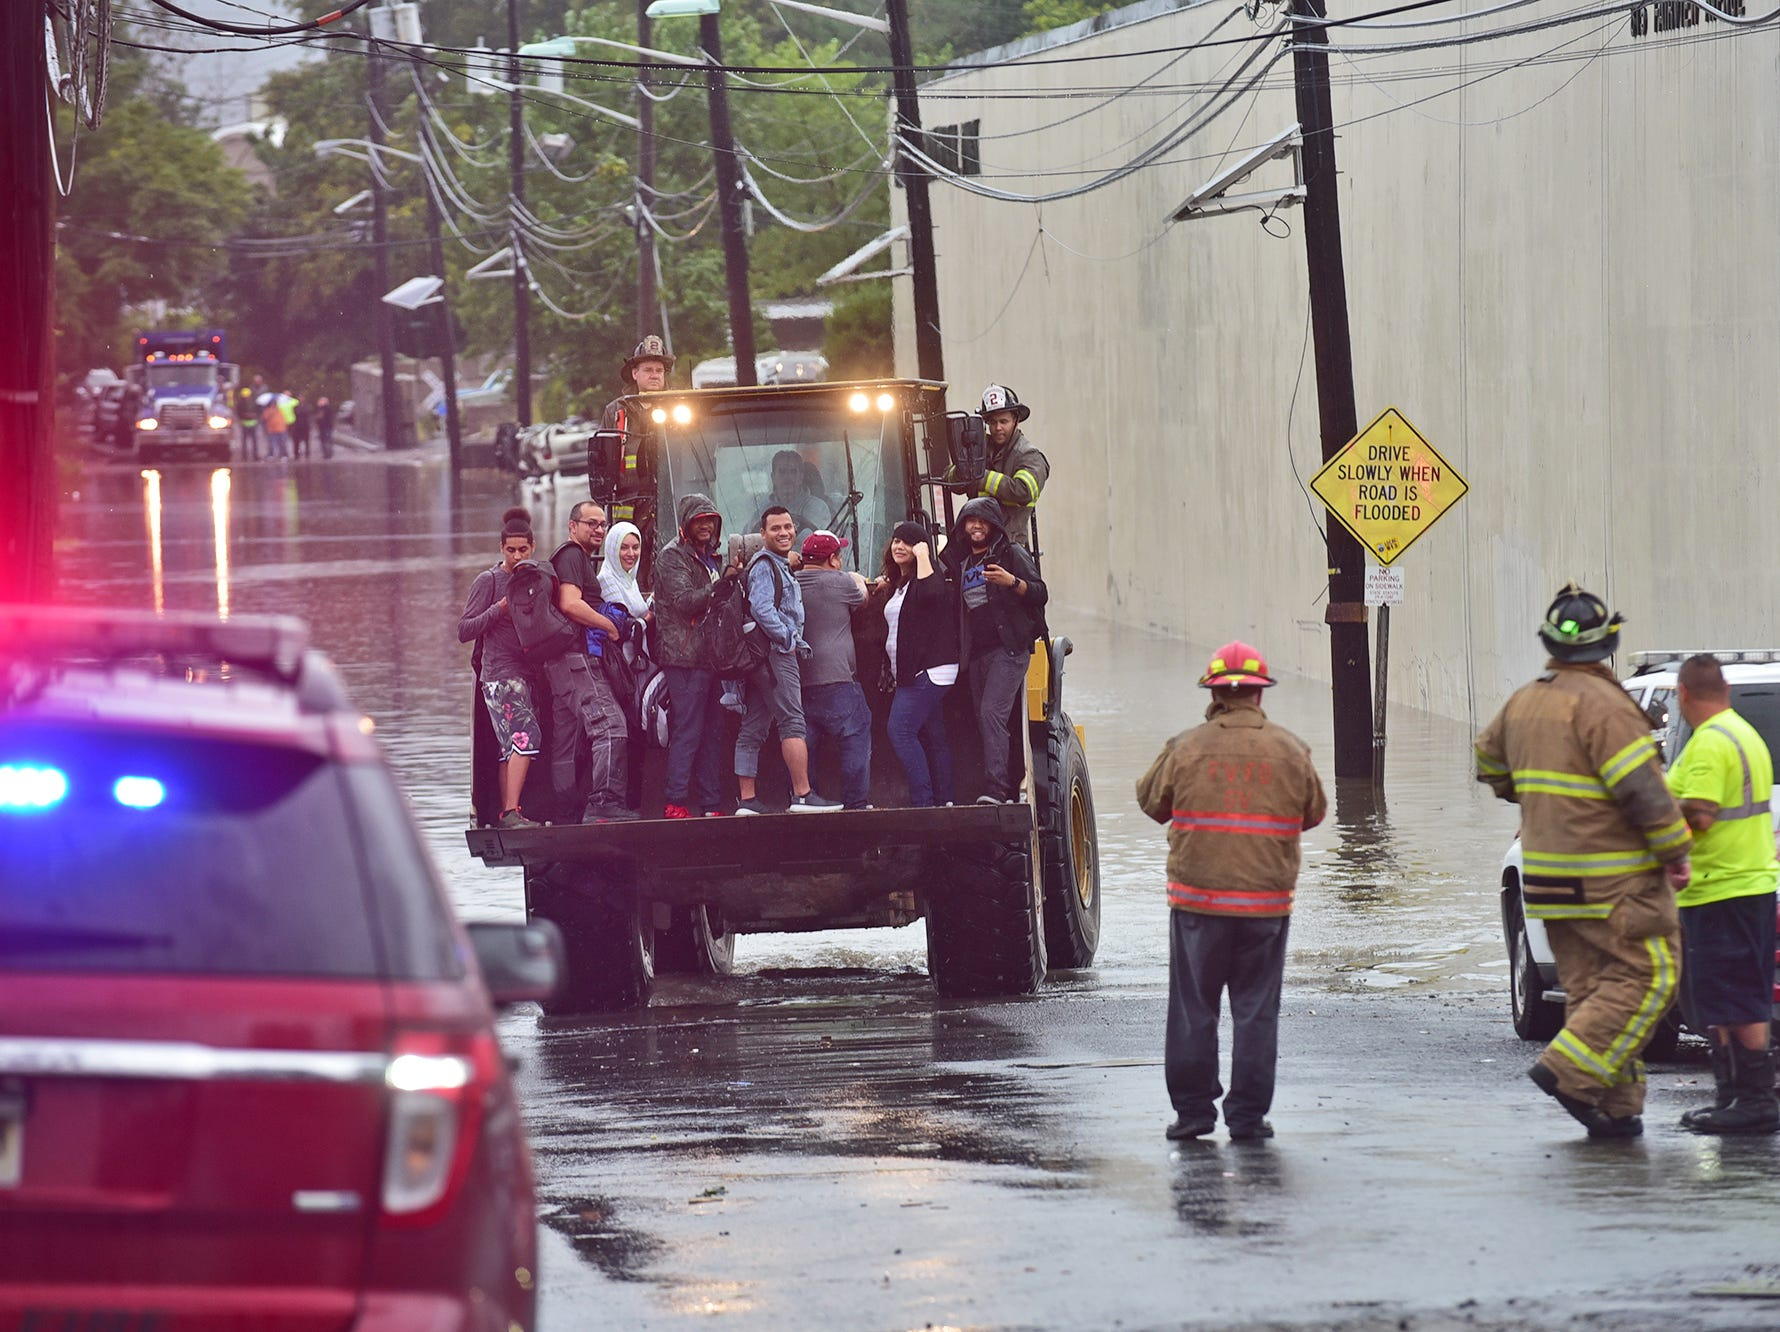 BREAKING NEWS/ WEATHER Rescue personnel evacuate stranded workers with a bulldozer after high water flooded the surrounding streets at an Industrial Park in Fairview.